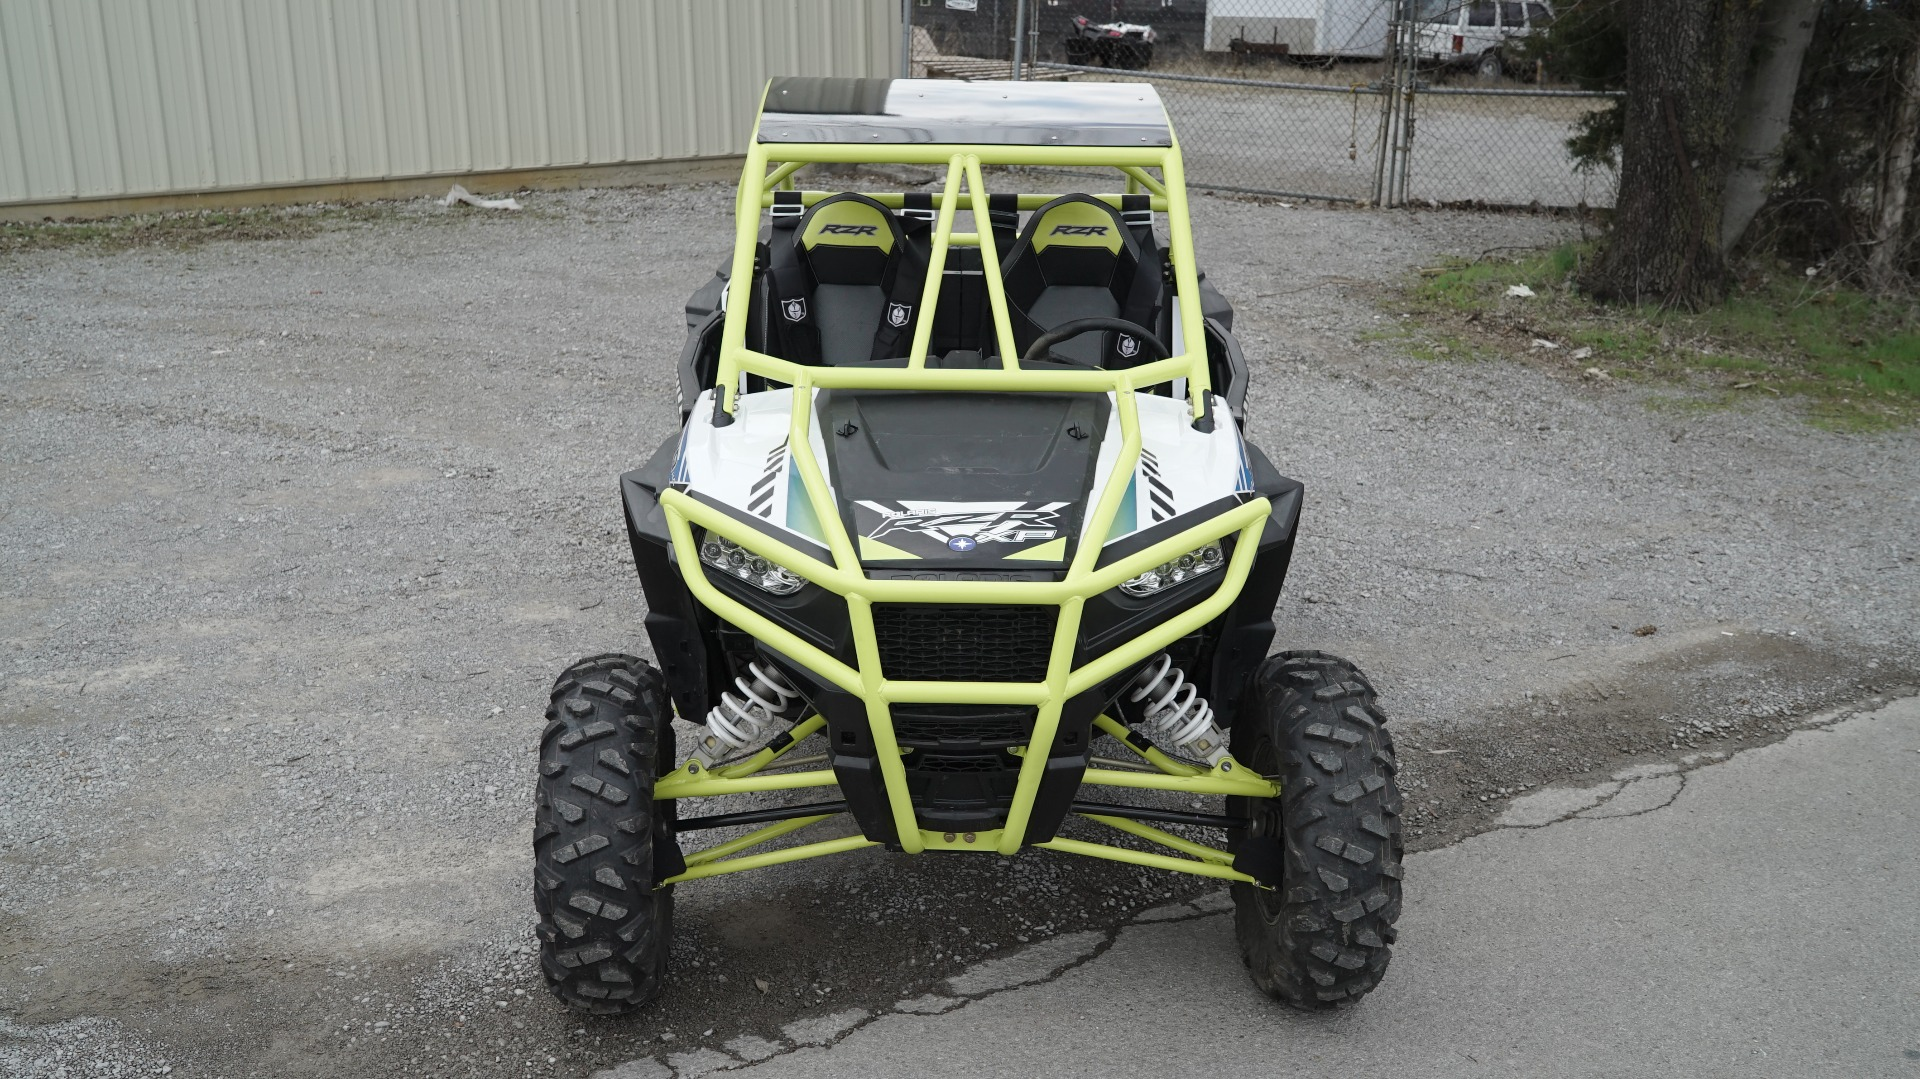 Polaris RZR 1000 with Yellow Roll Cage Front Bumper Image 2